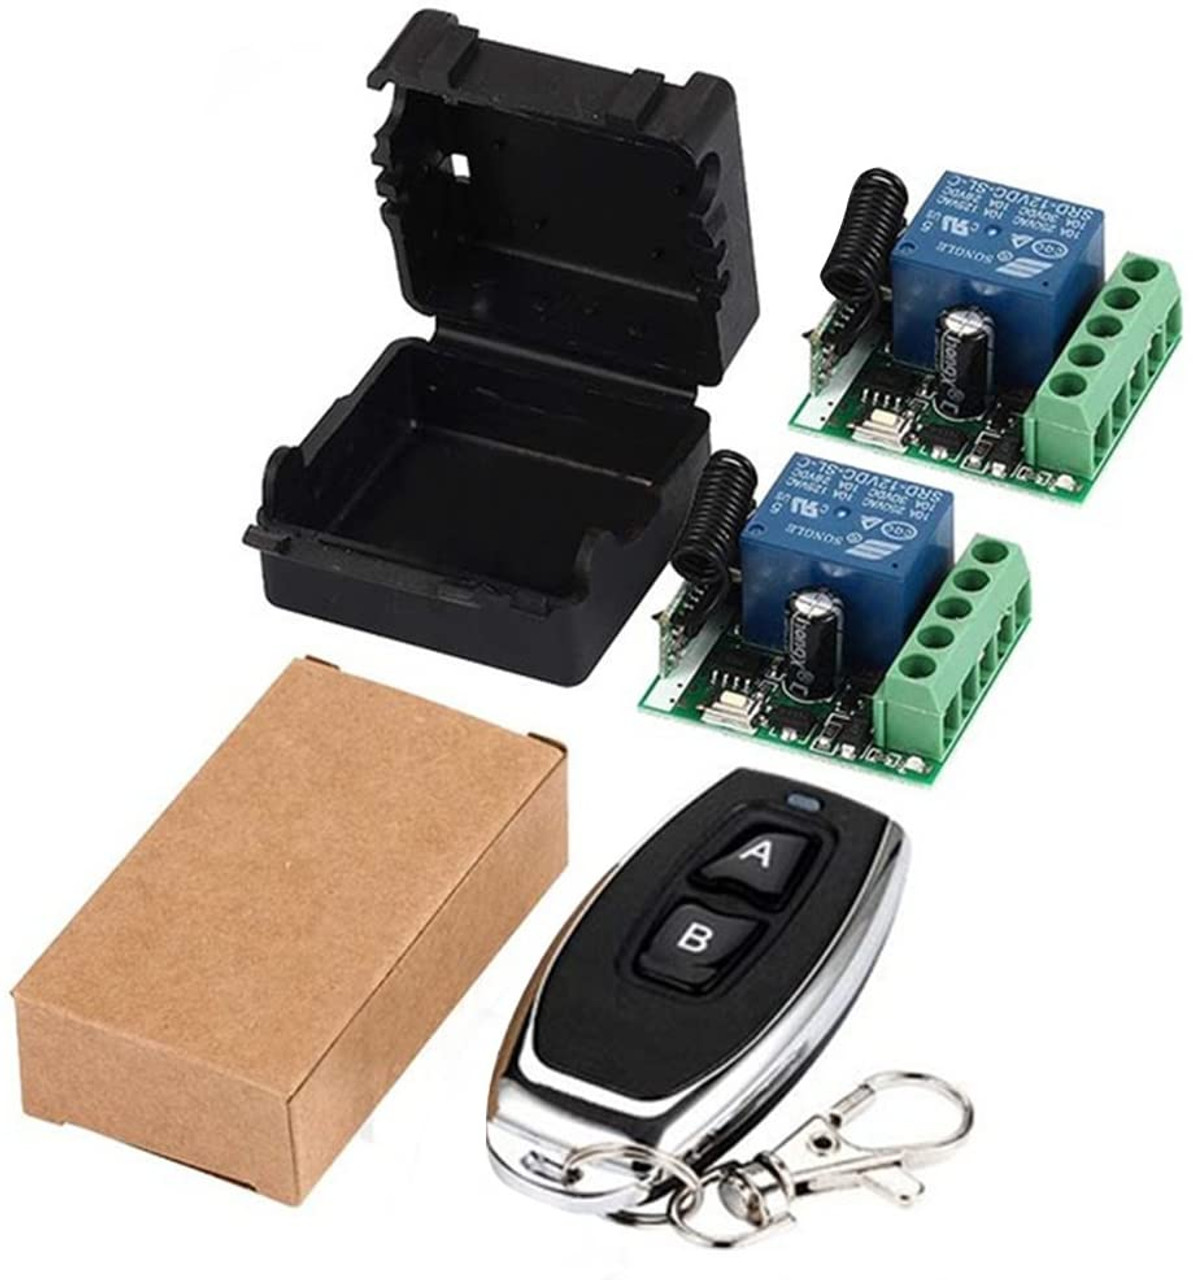 DC 12V 433MHz Wireless Remote Control With Switch Relay Receiver Transmitter